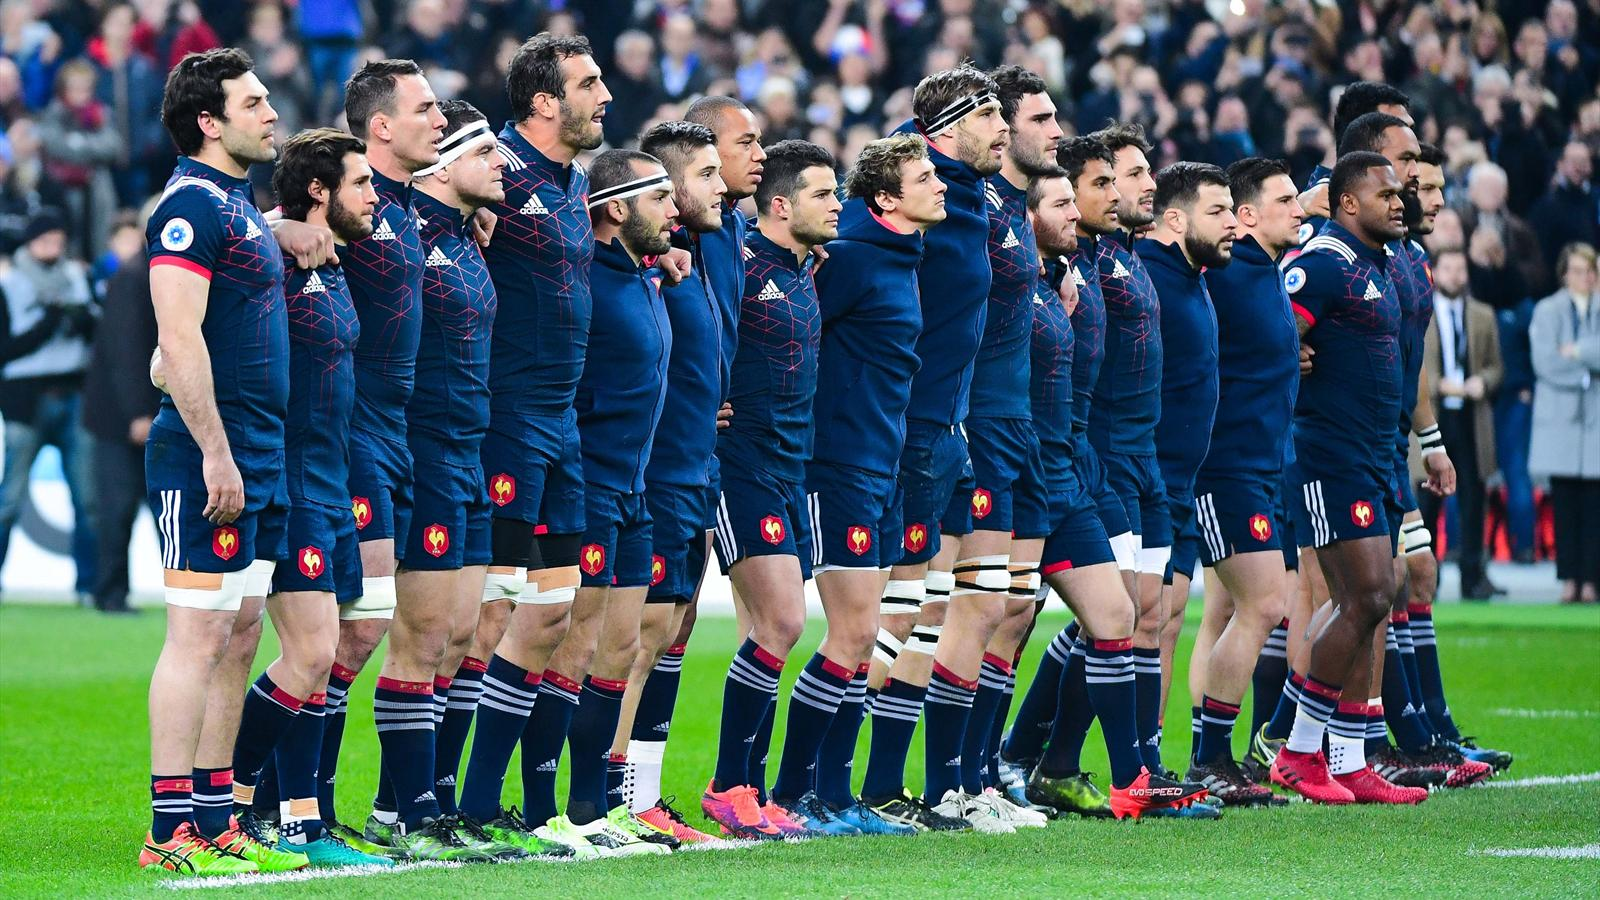 Photo rugby gay equipe france